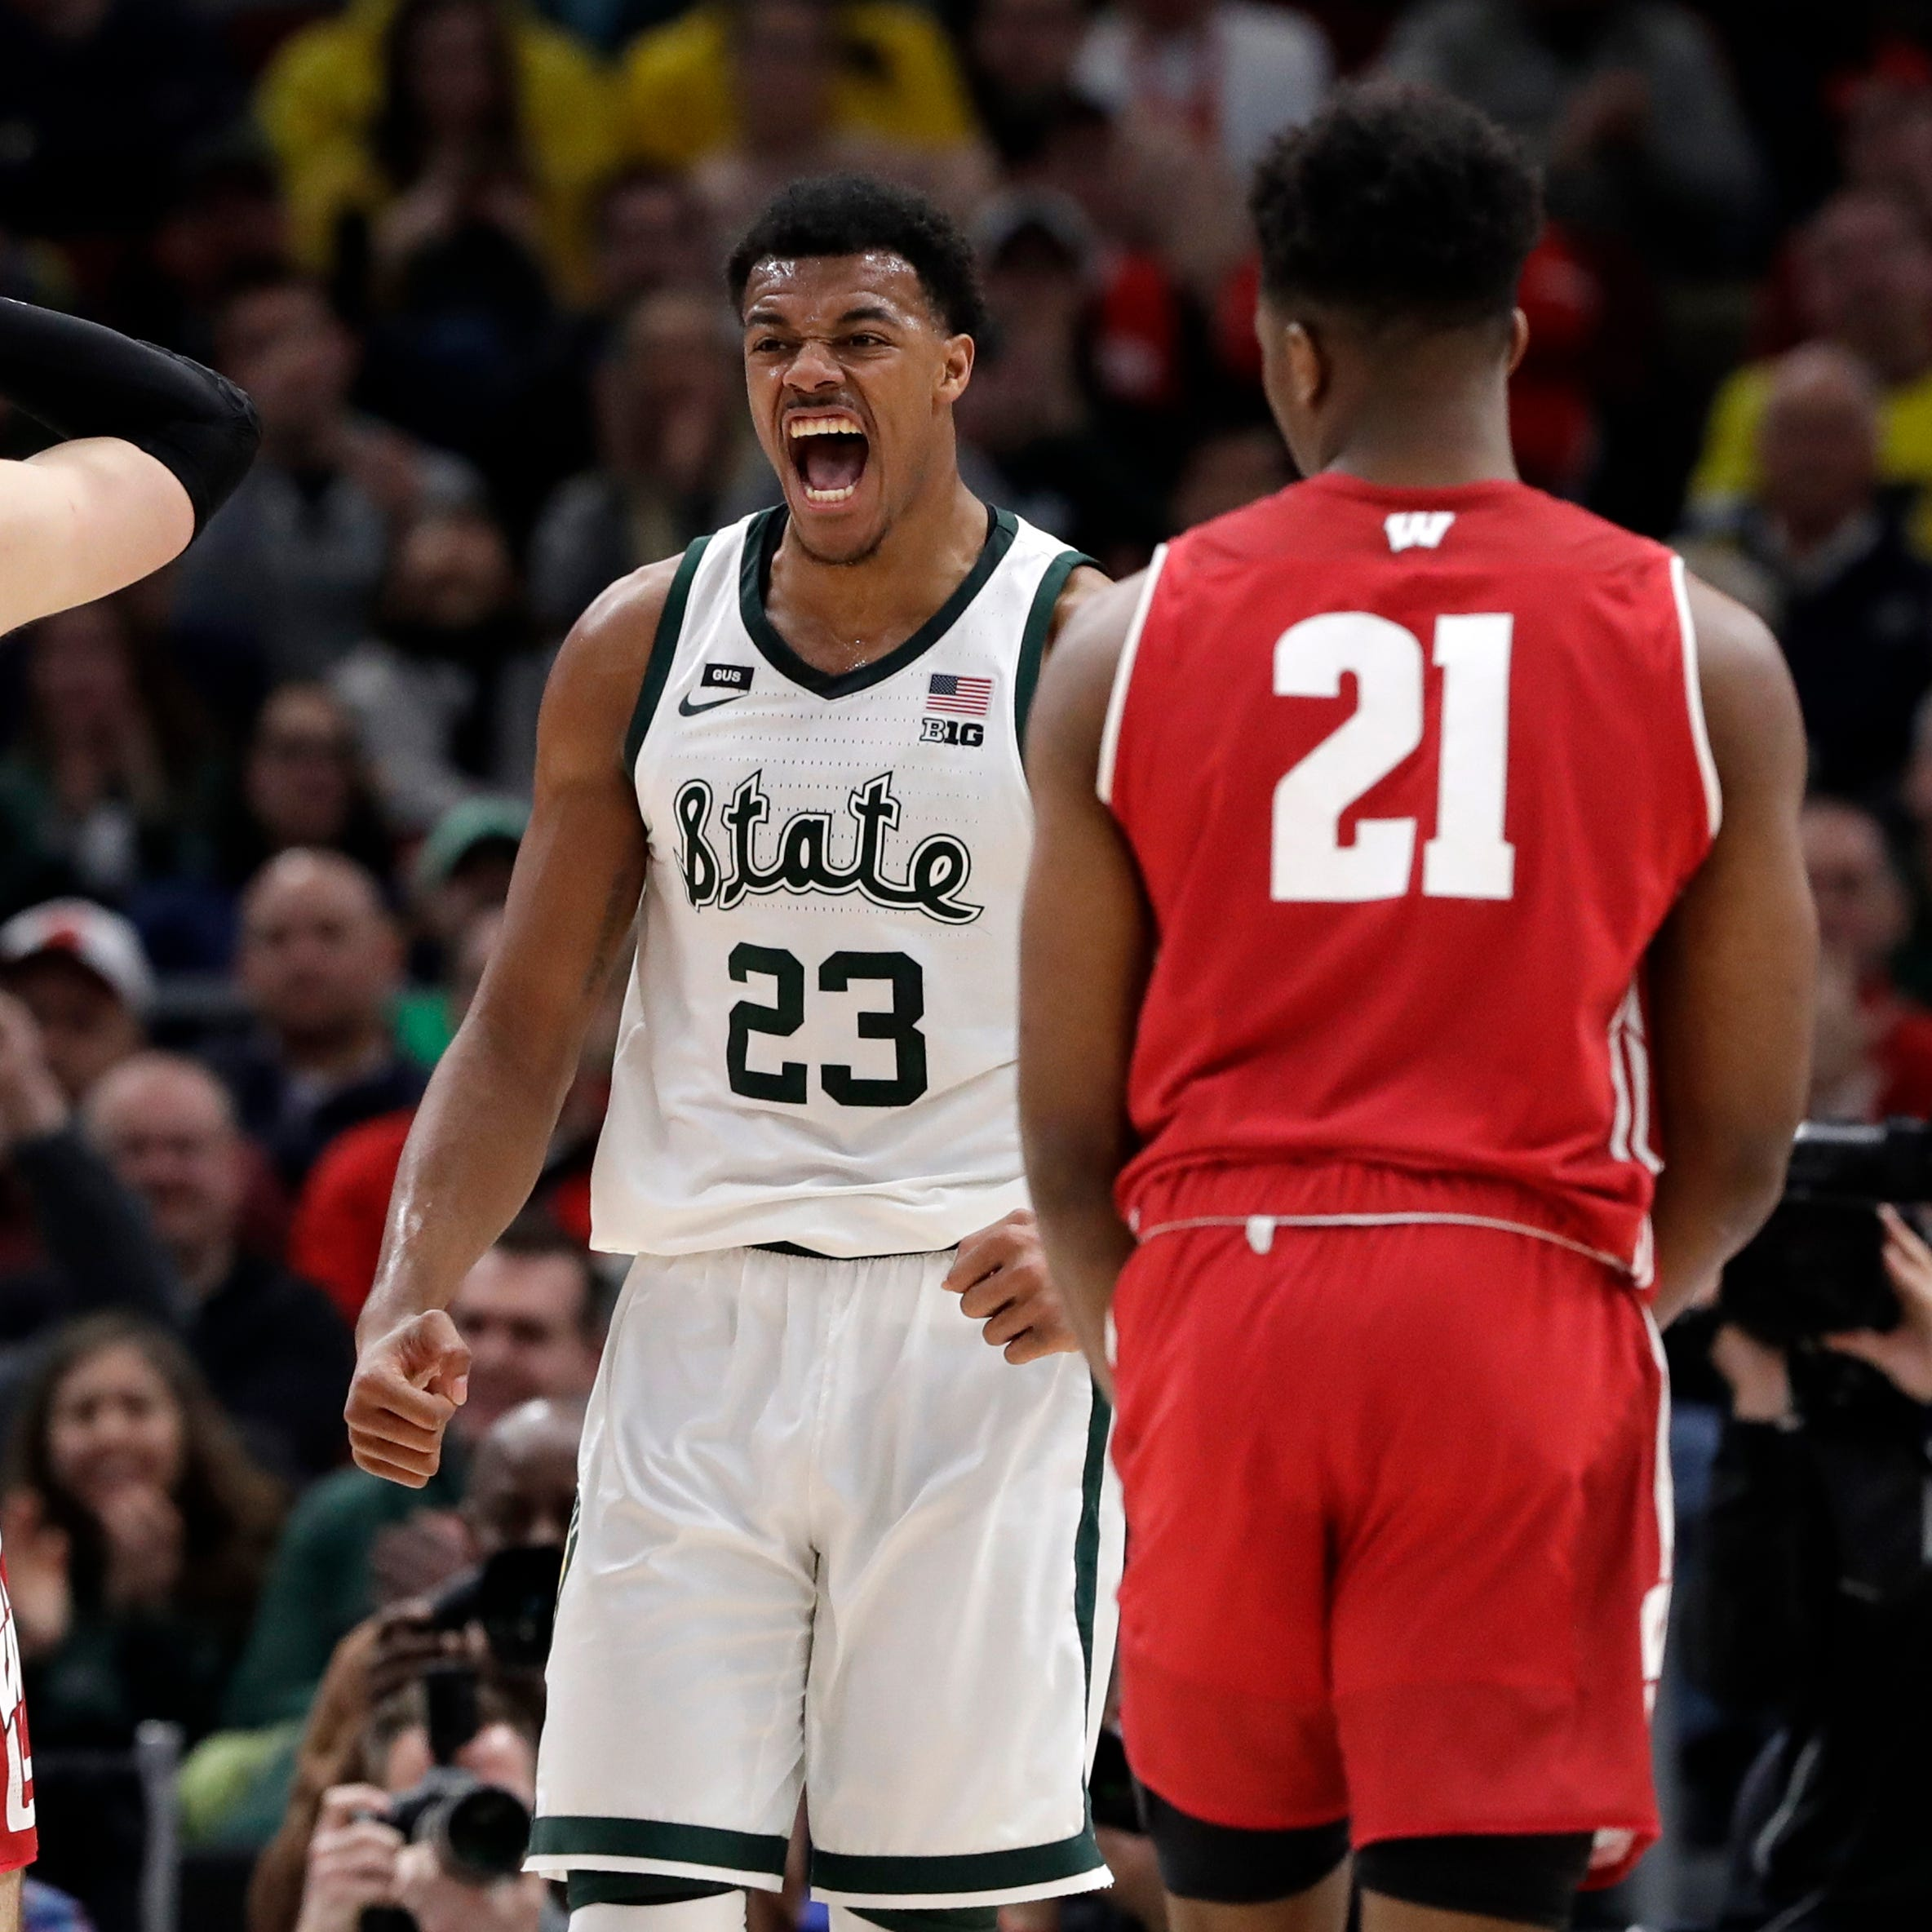 Michigan State 67: UW 55: Spartans started quickly and kept the Badgers at bay all game